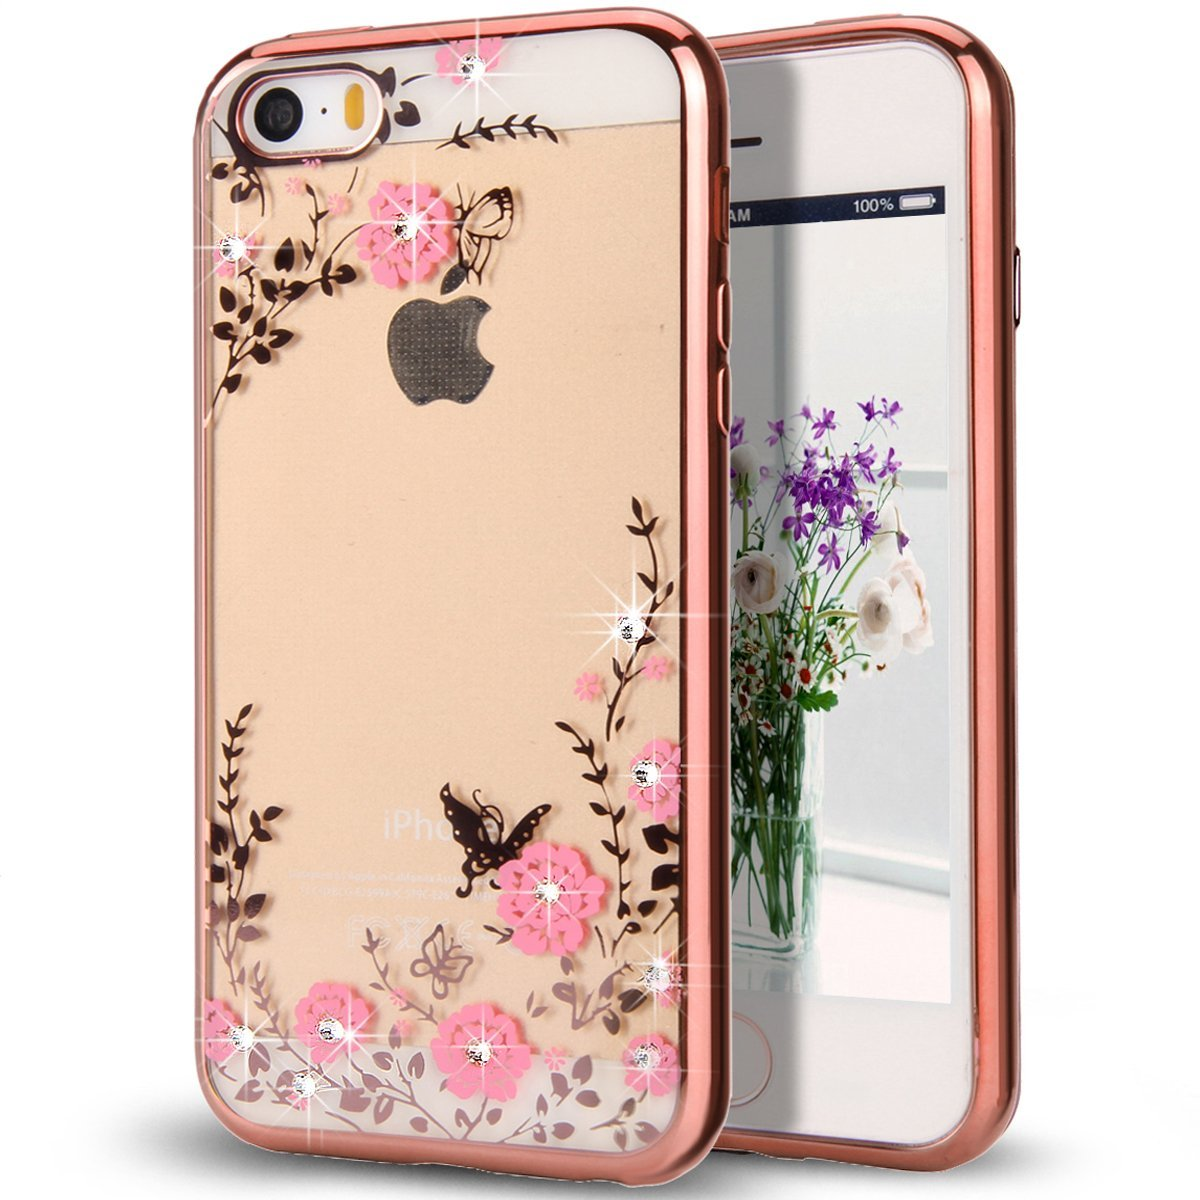 Pouzdro Crystal Flowers iPhone SE / 5s / 5 rose gold